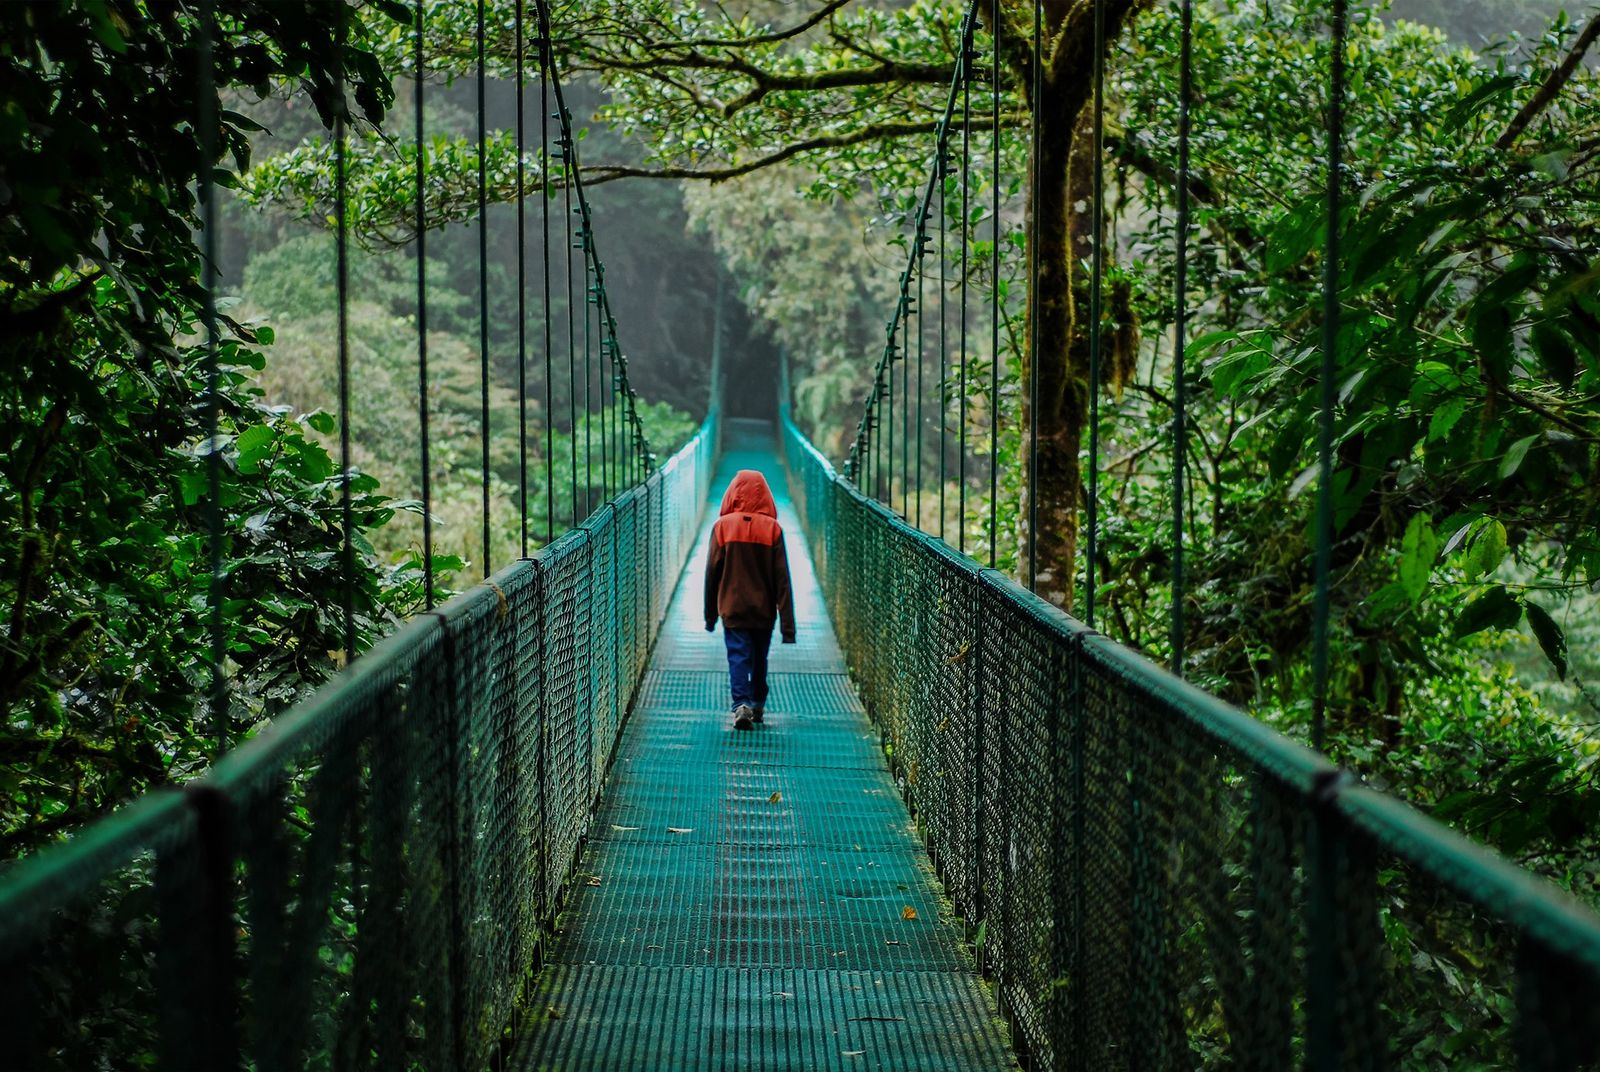 A town in Costa Rica faces an eco-tourism crisis